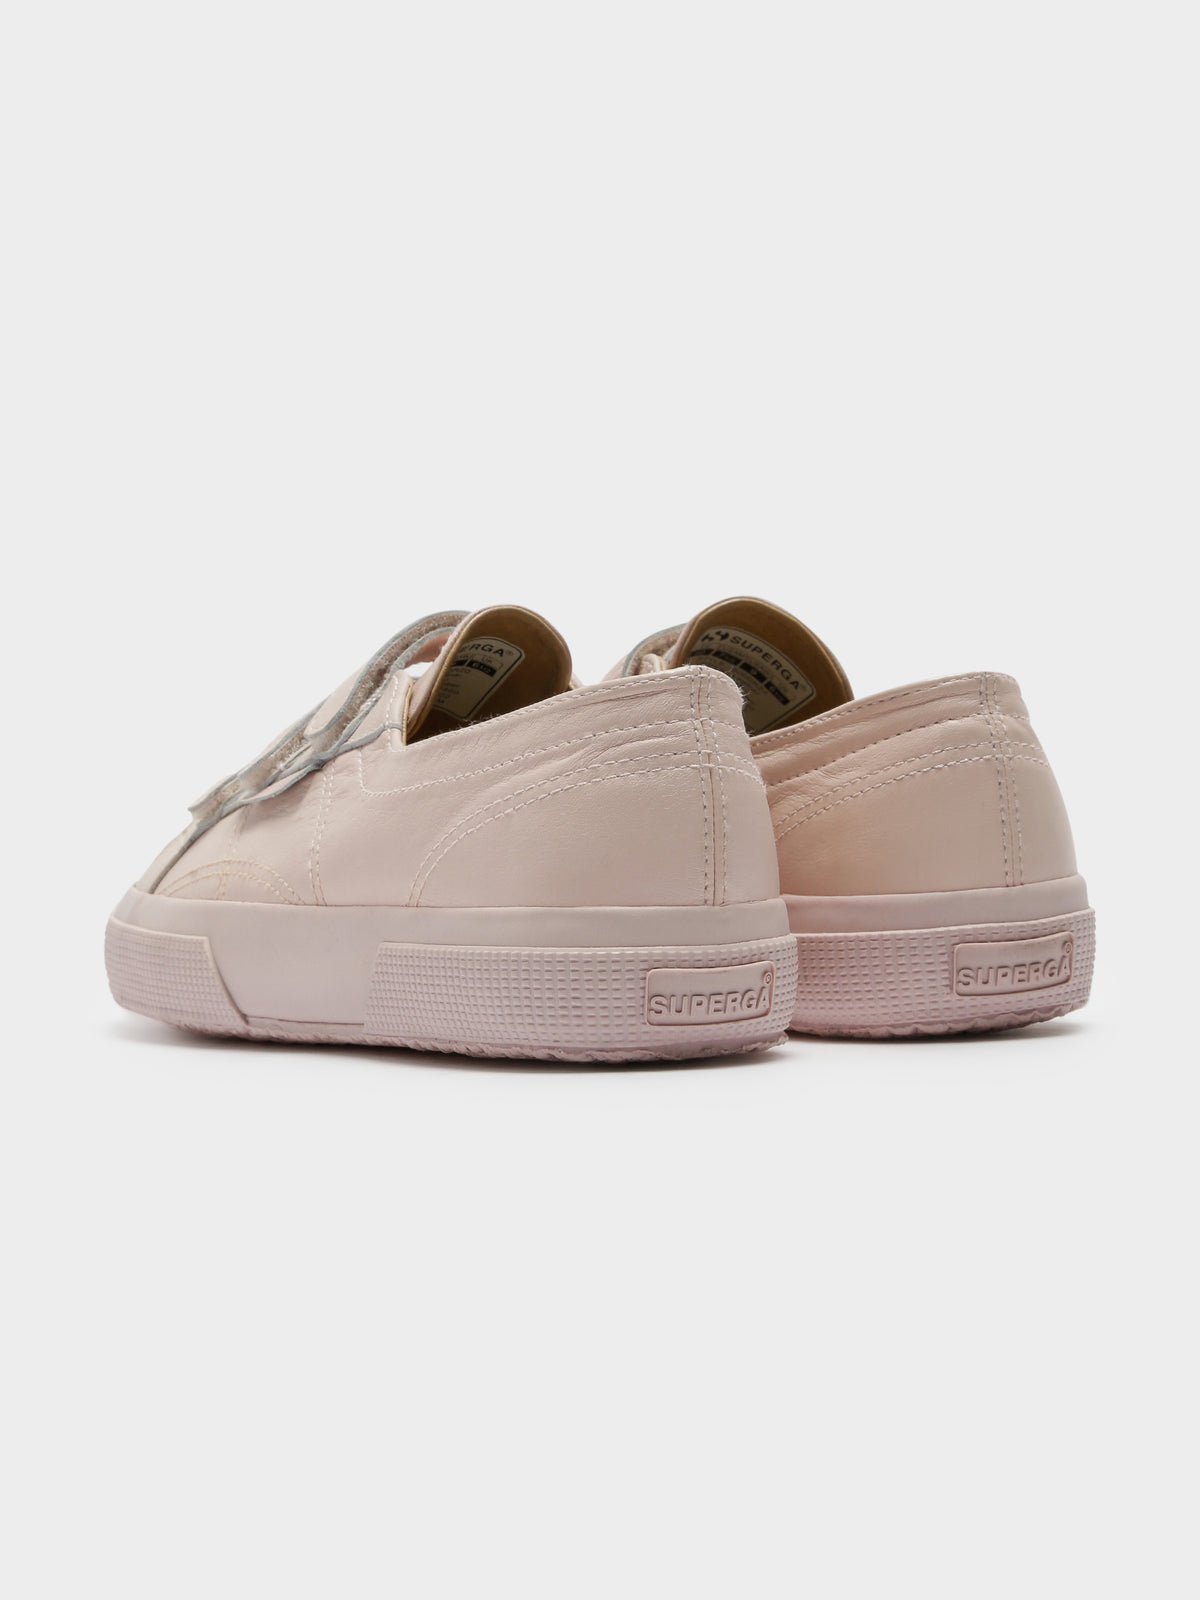 Womens 2750 NAPVW Velcro Sneakers in Pink Skin